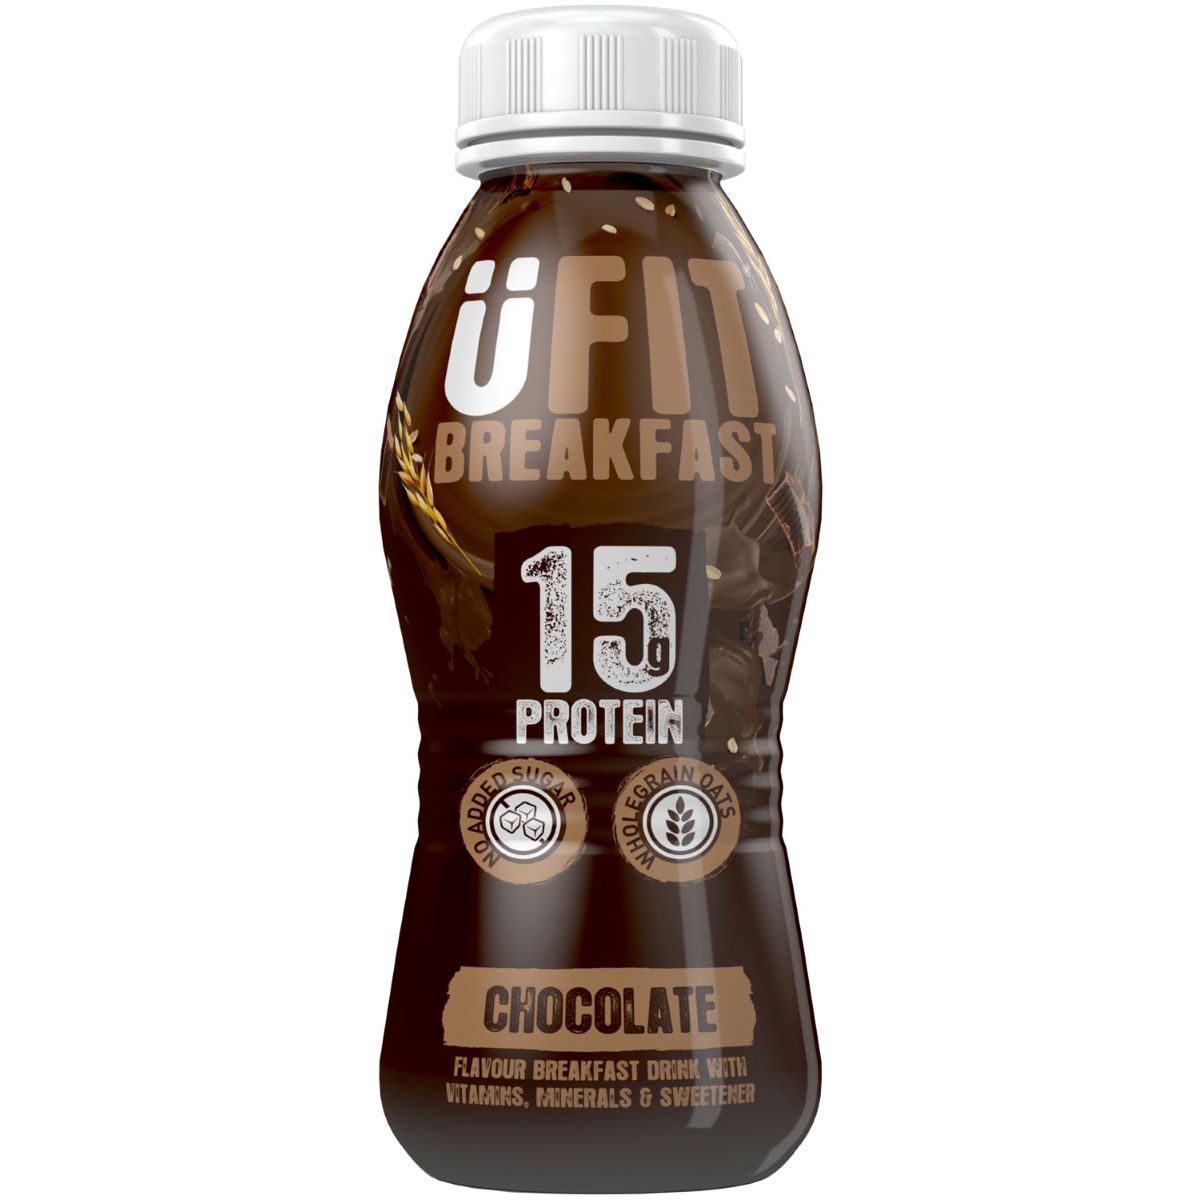 UFIT UFIT Breakfast (310ml)   Ready to Drink